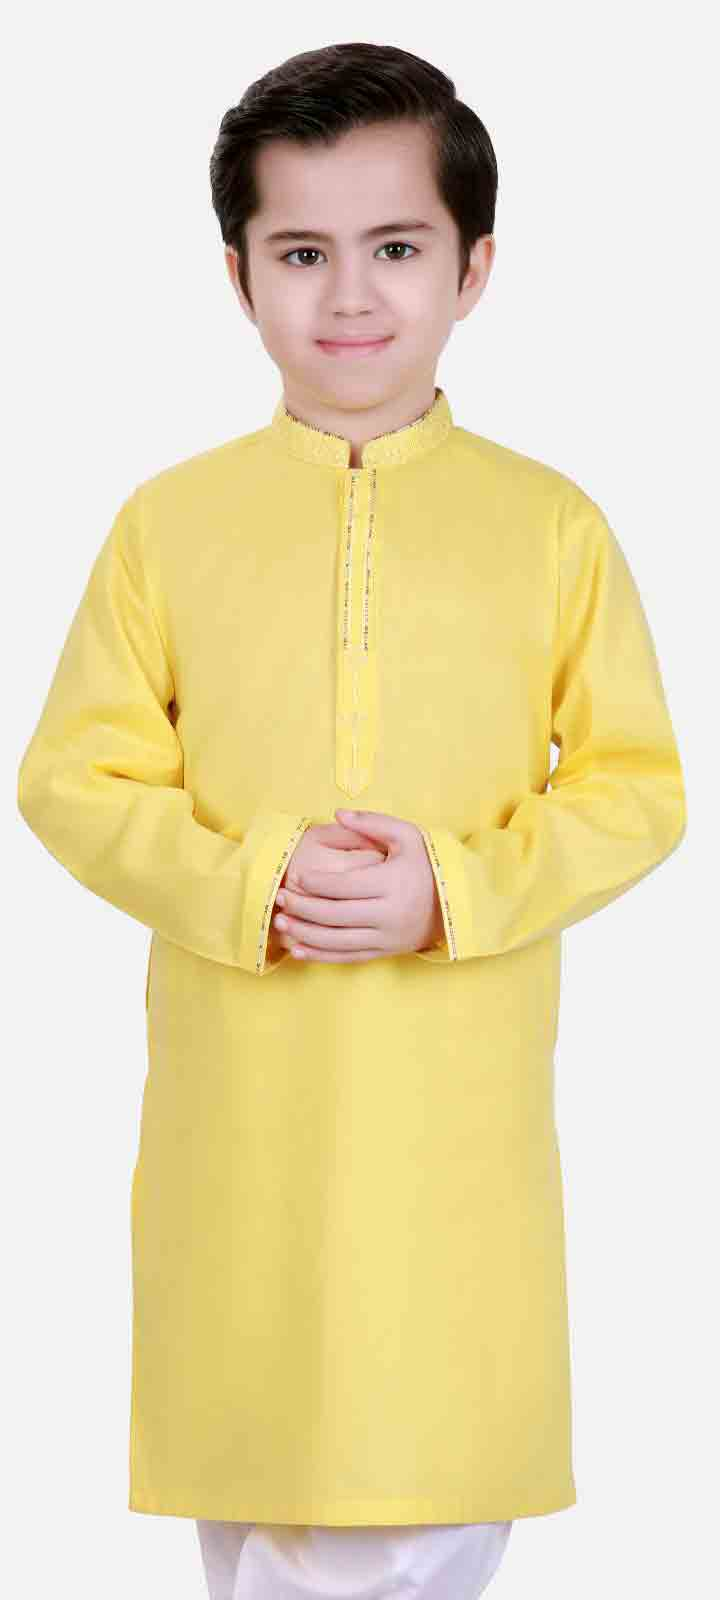 New yellow kameez shalwar latest eid dresses for little boys in Pakistan 2017